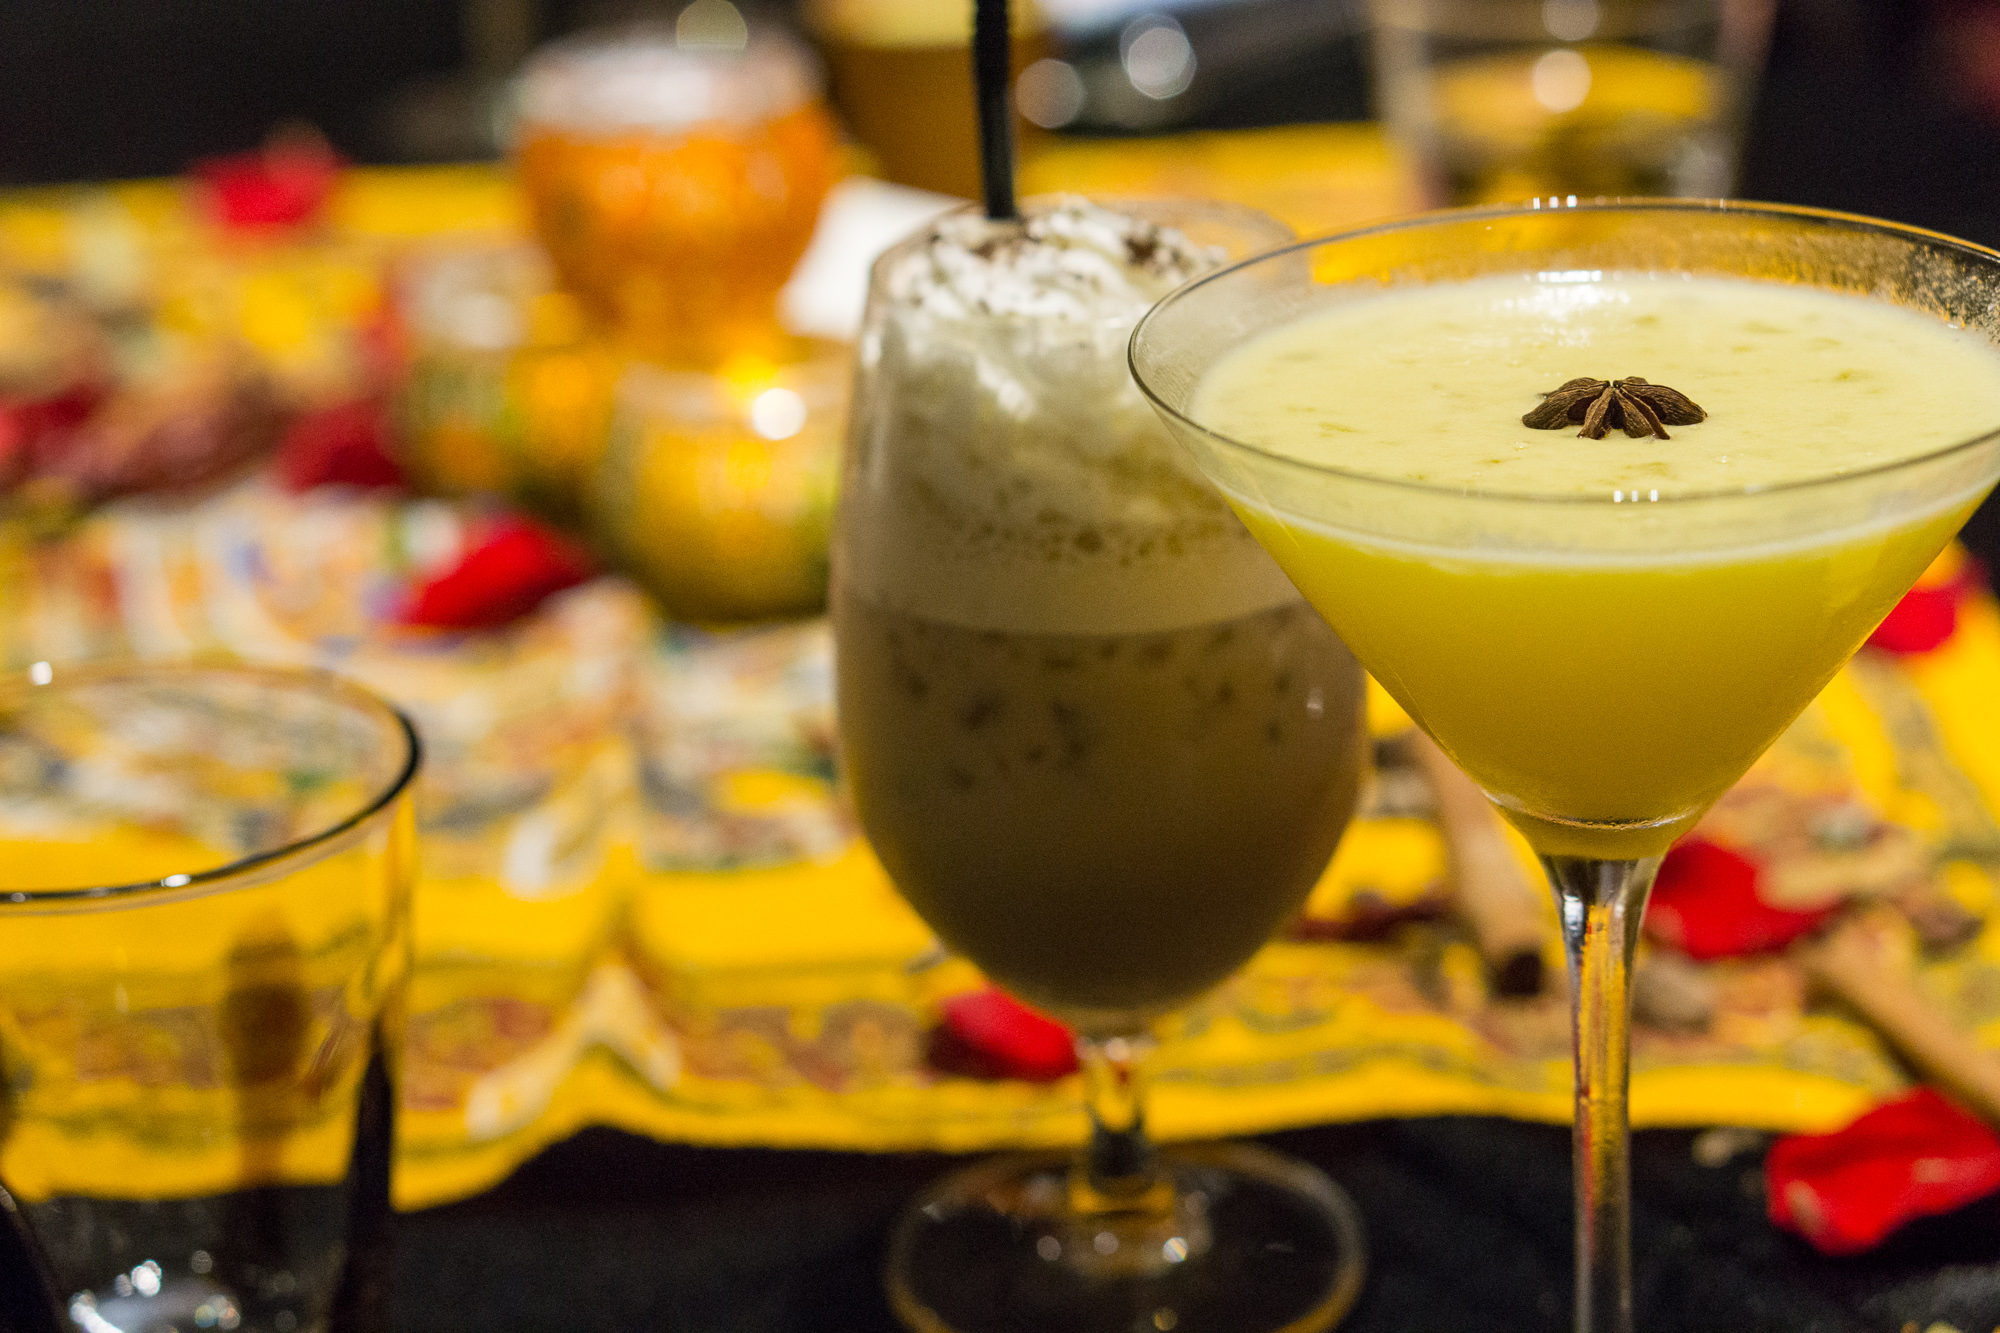 Indian Food Festival at Melt Cafe Mandarin Oriental Singapore - Mango Martini